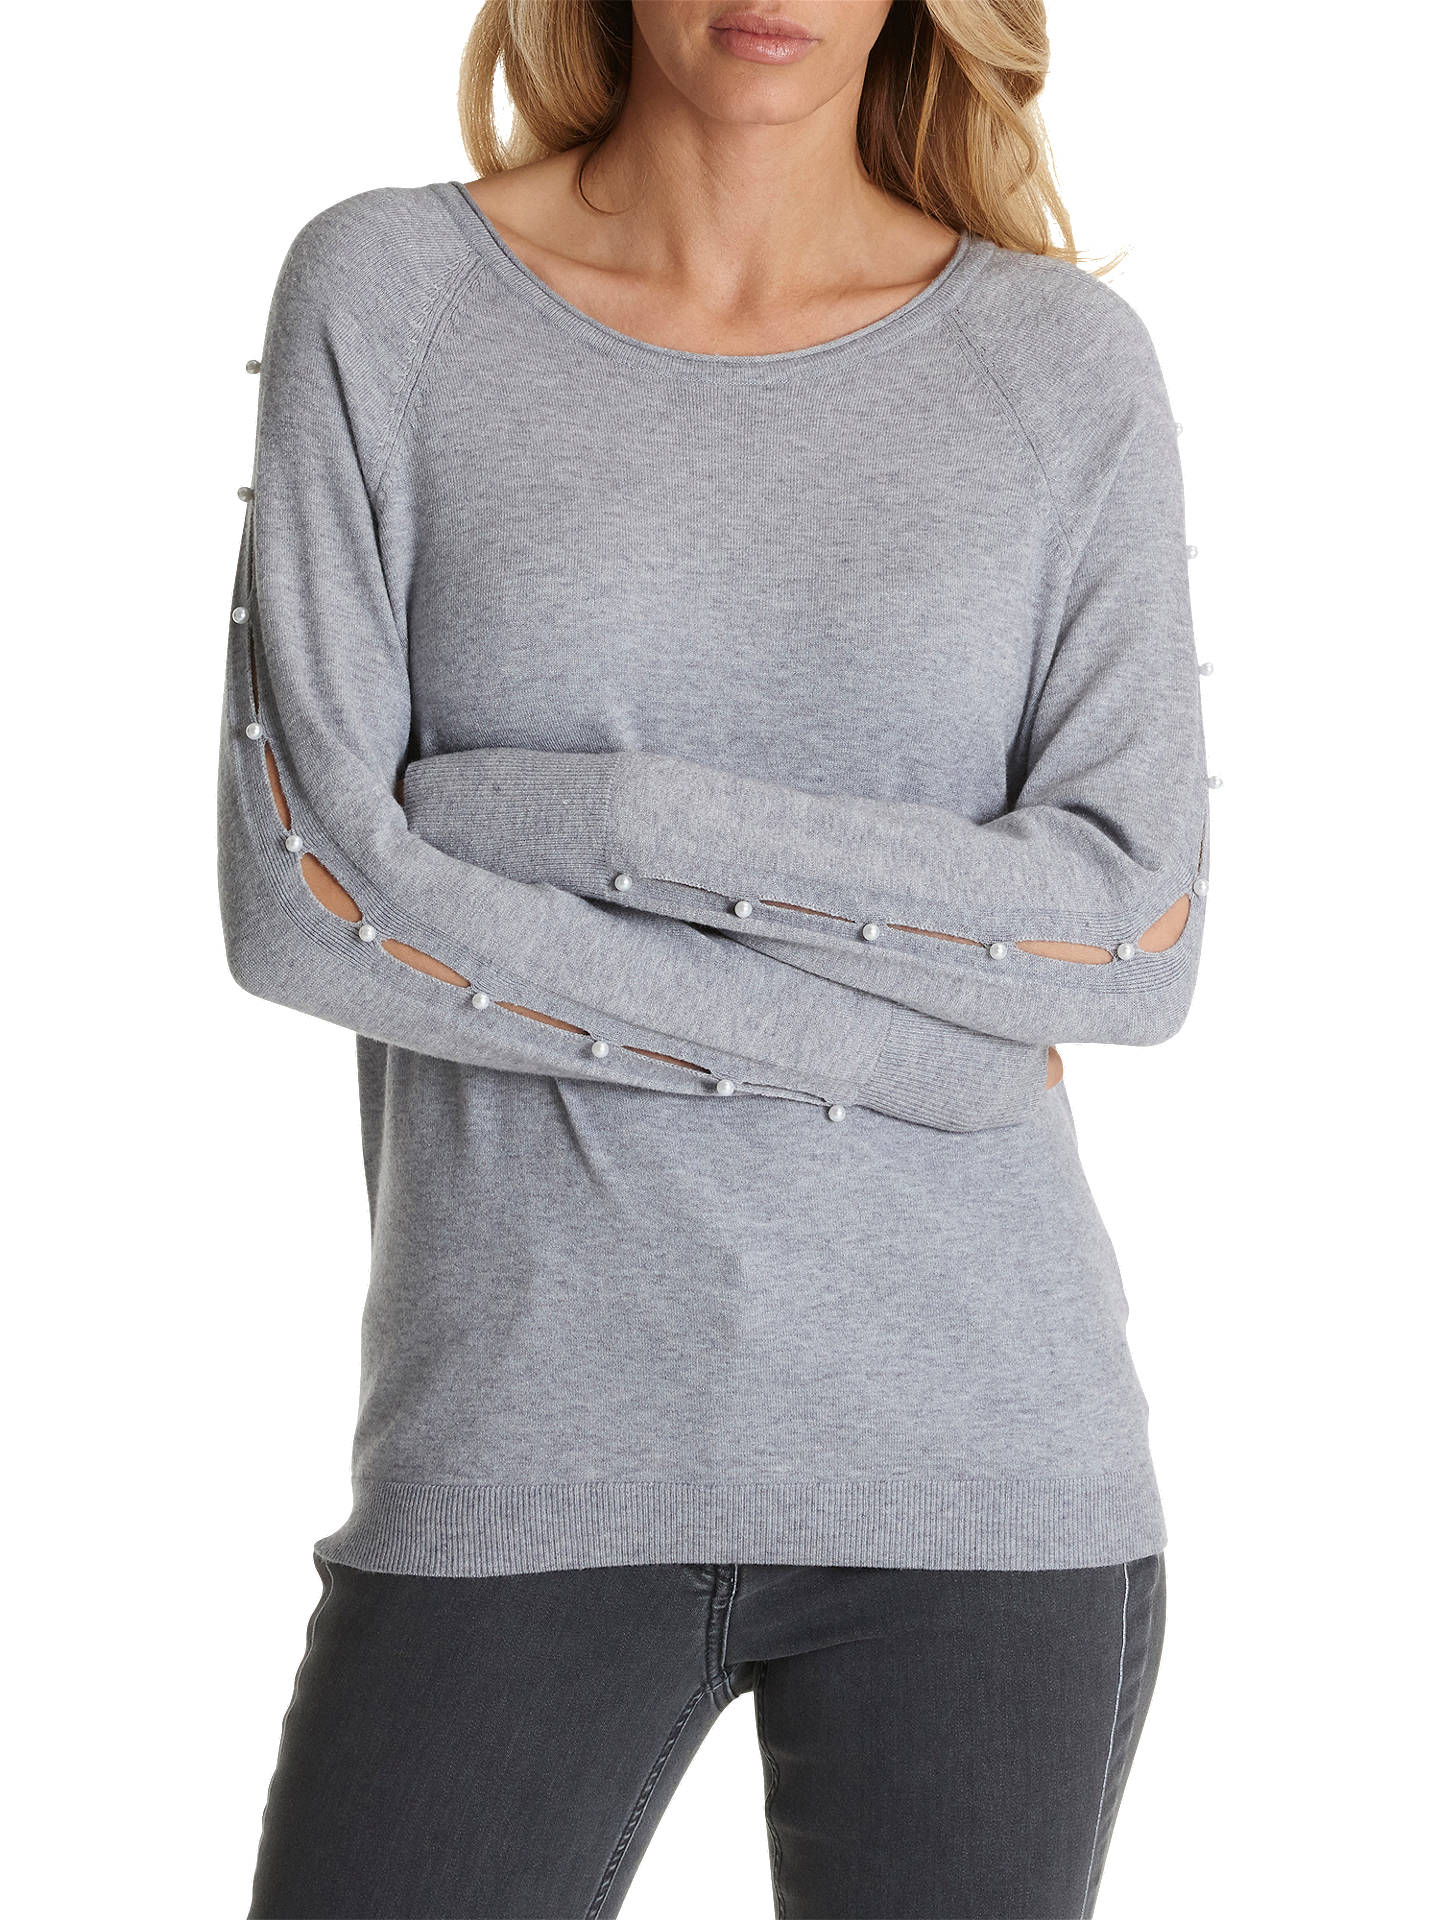 BuyBetty Barclay Keyhole Slit Embellished Knit Jumper, Multi Grey, 14 Online at johnlewis.com